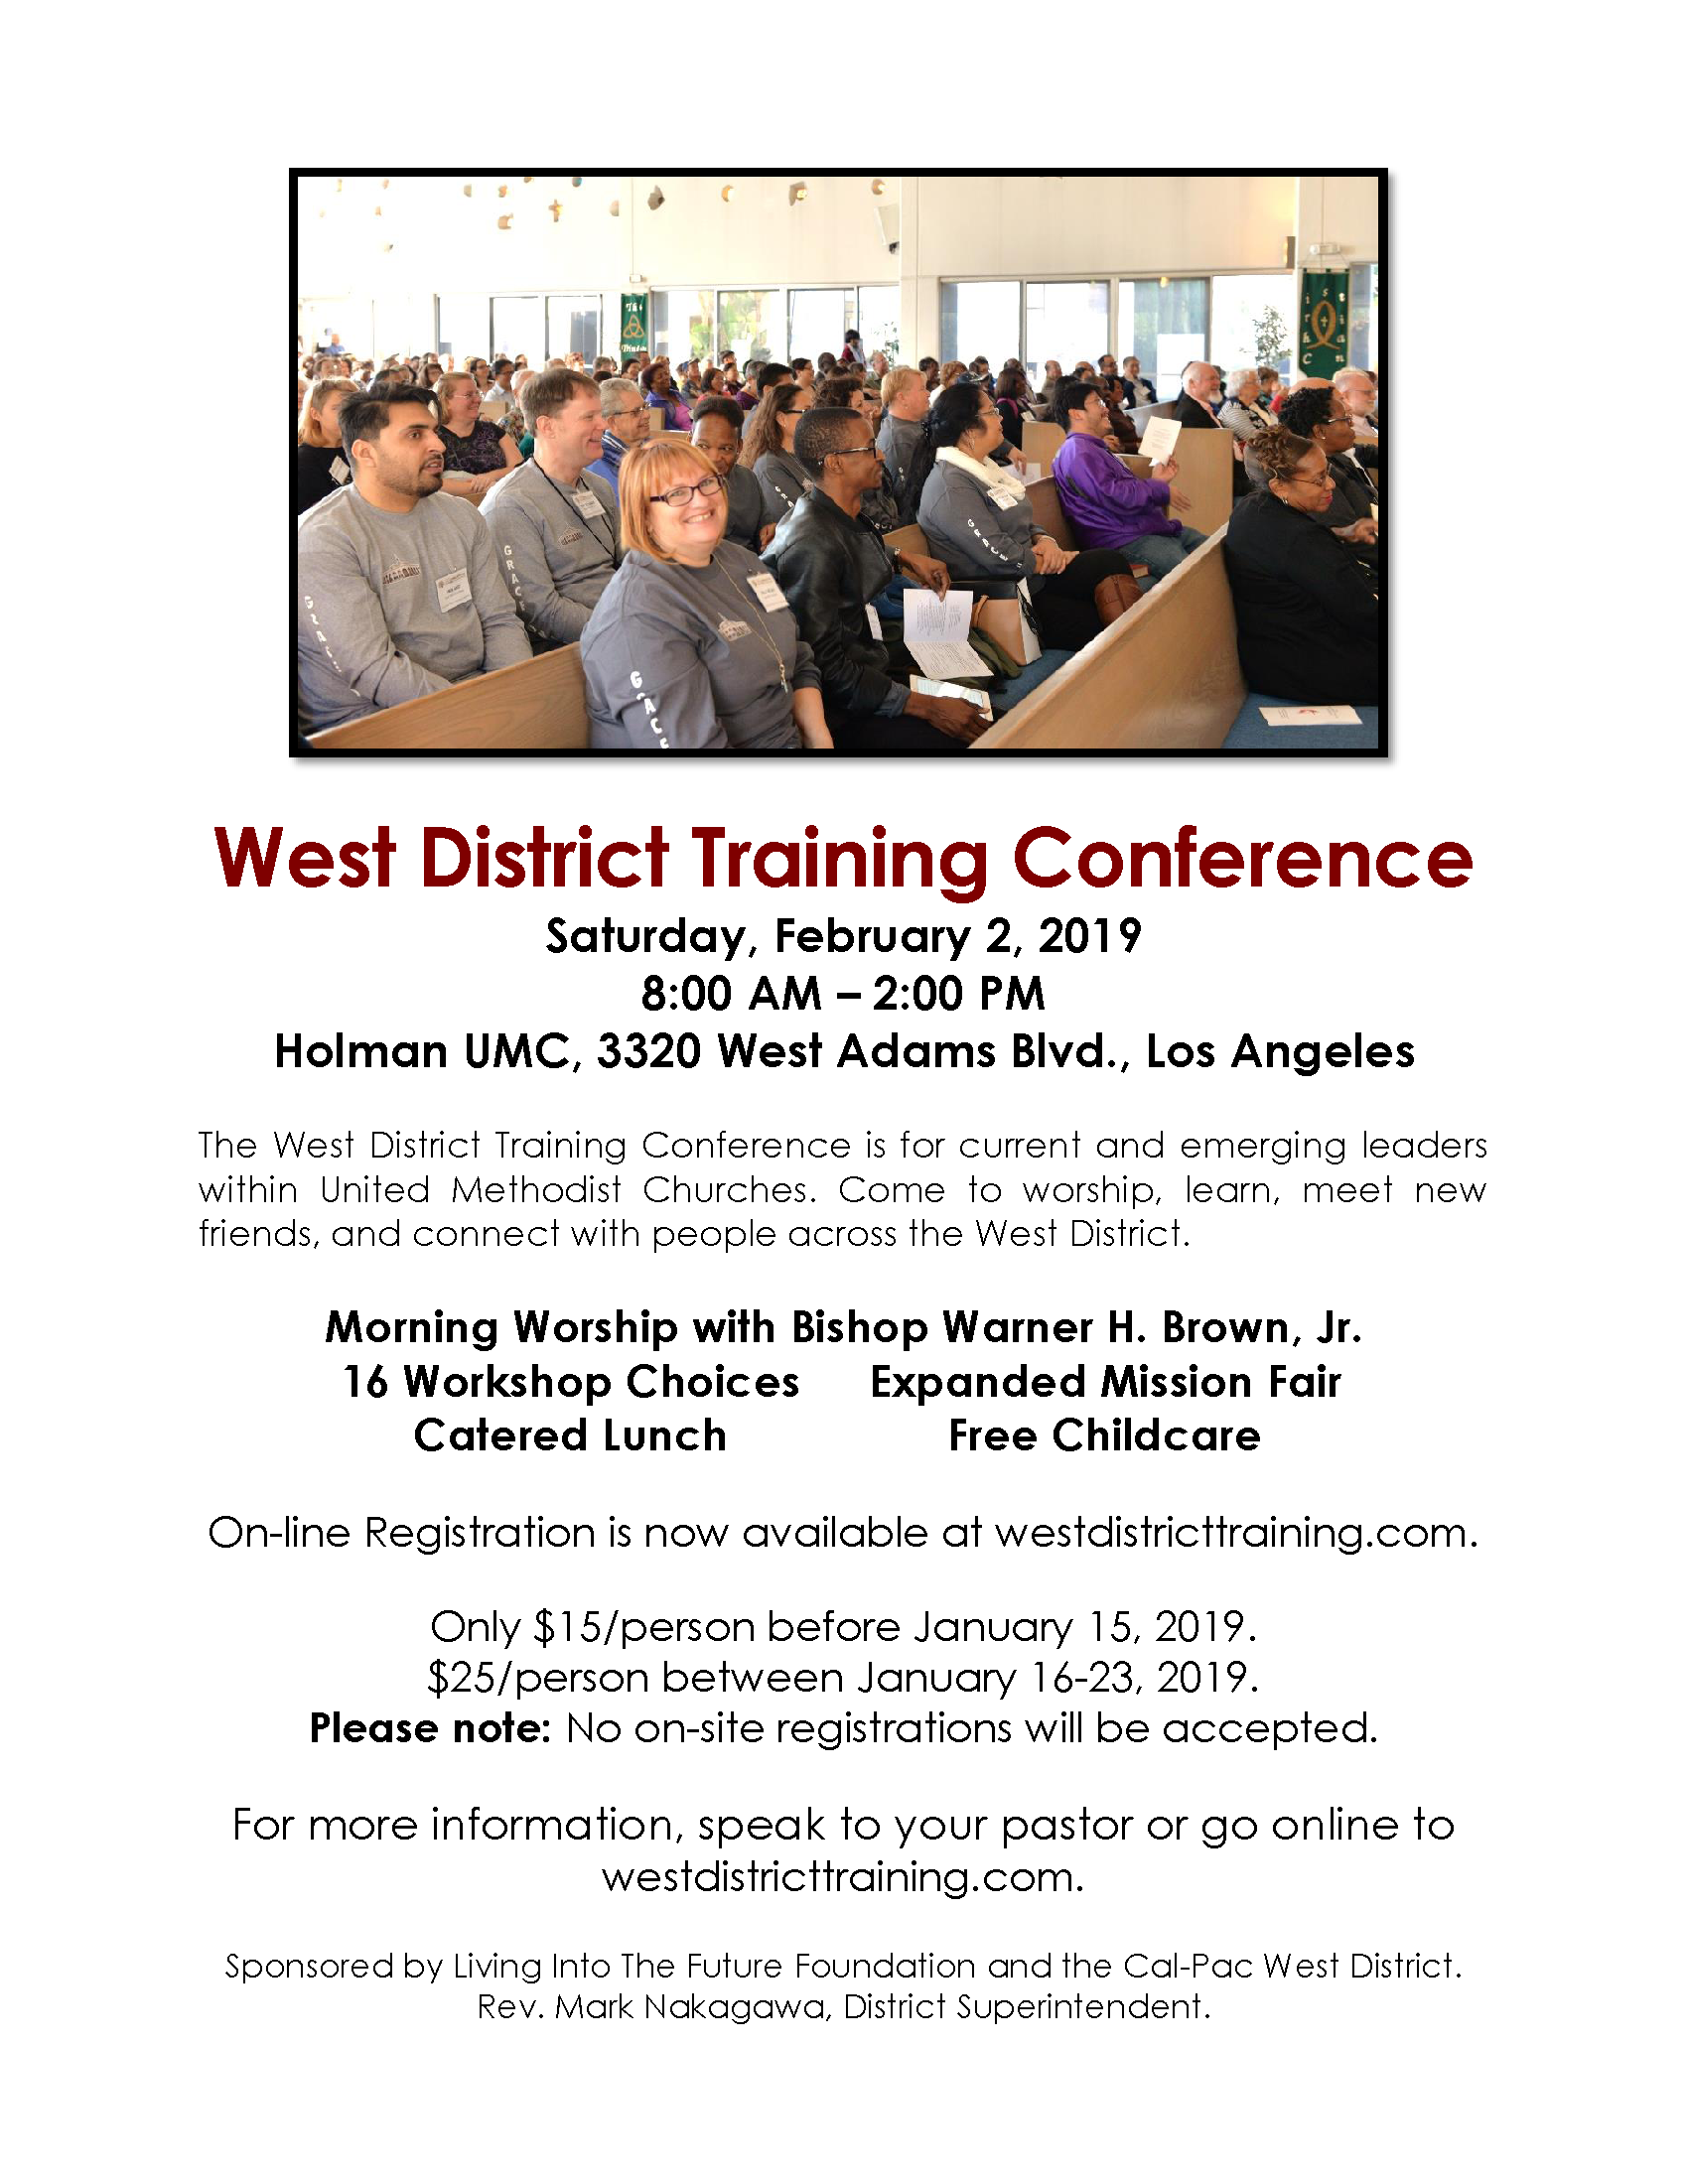 West District Training Conference 2019 – Holman United Methodist Church